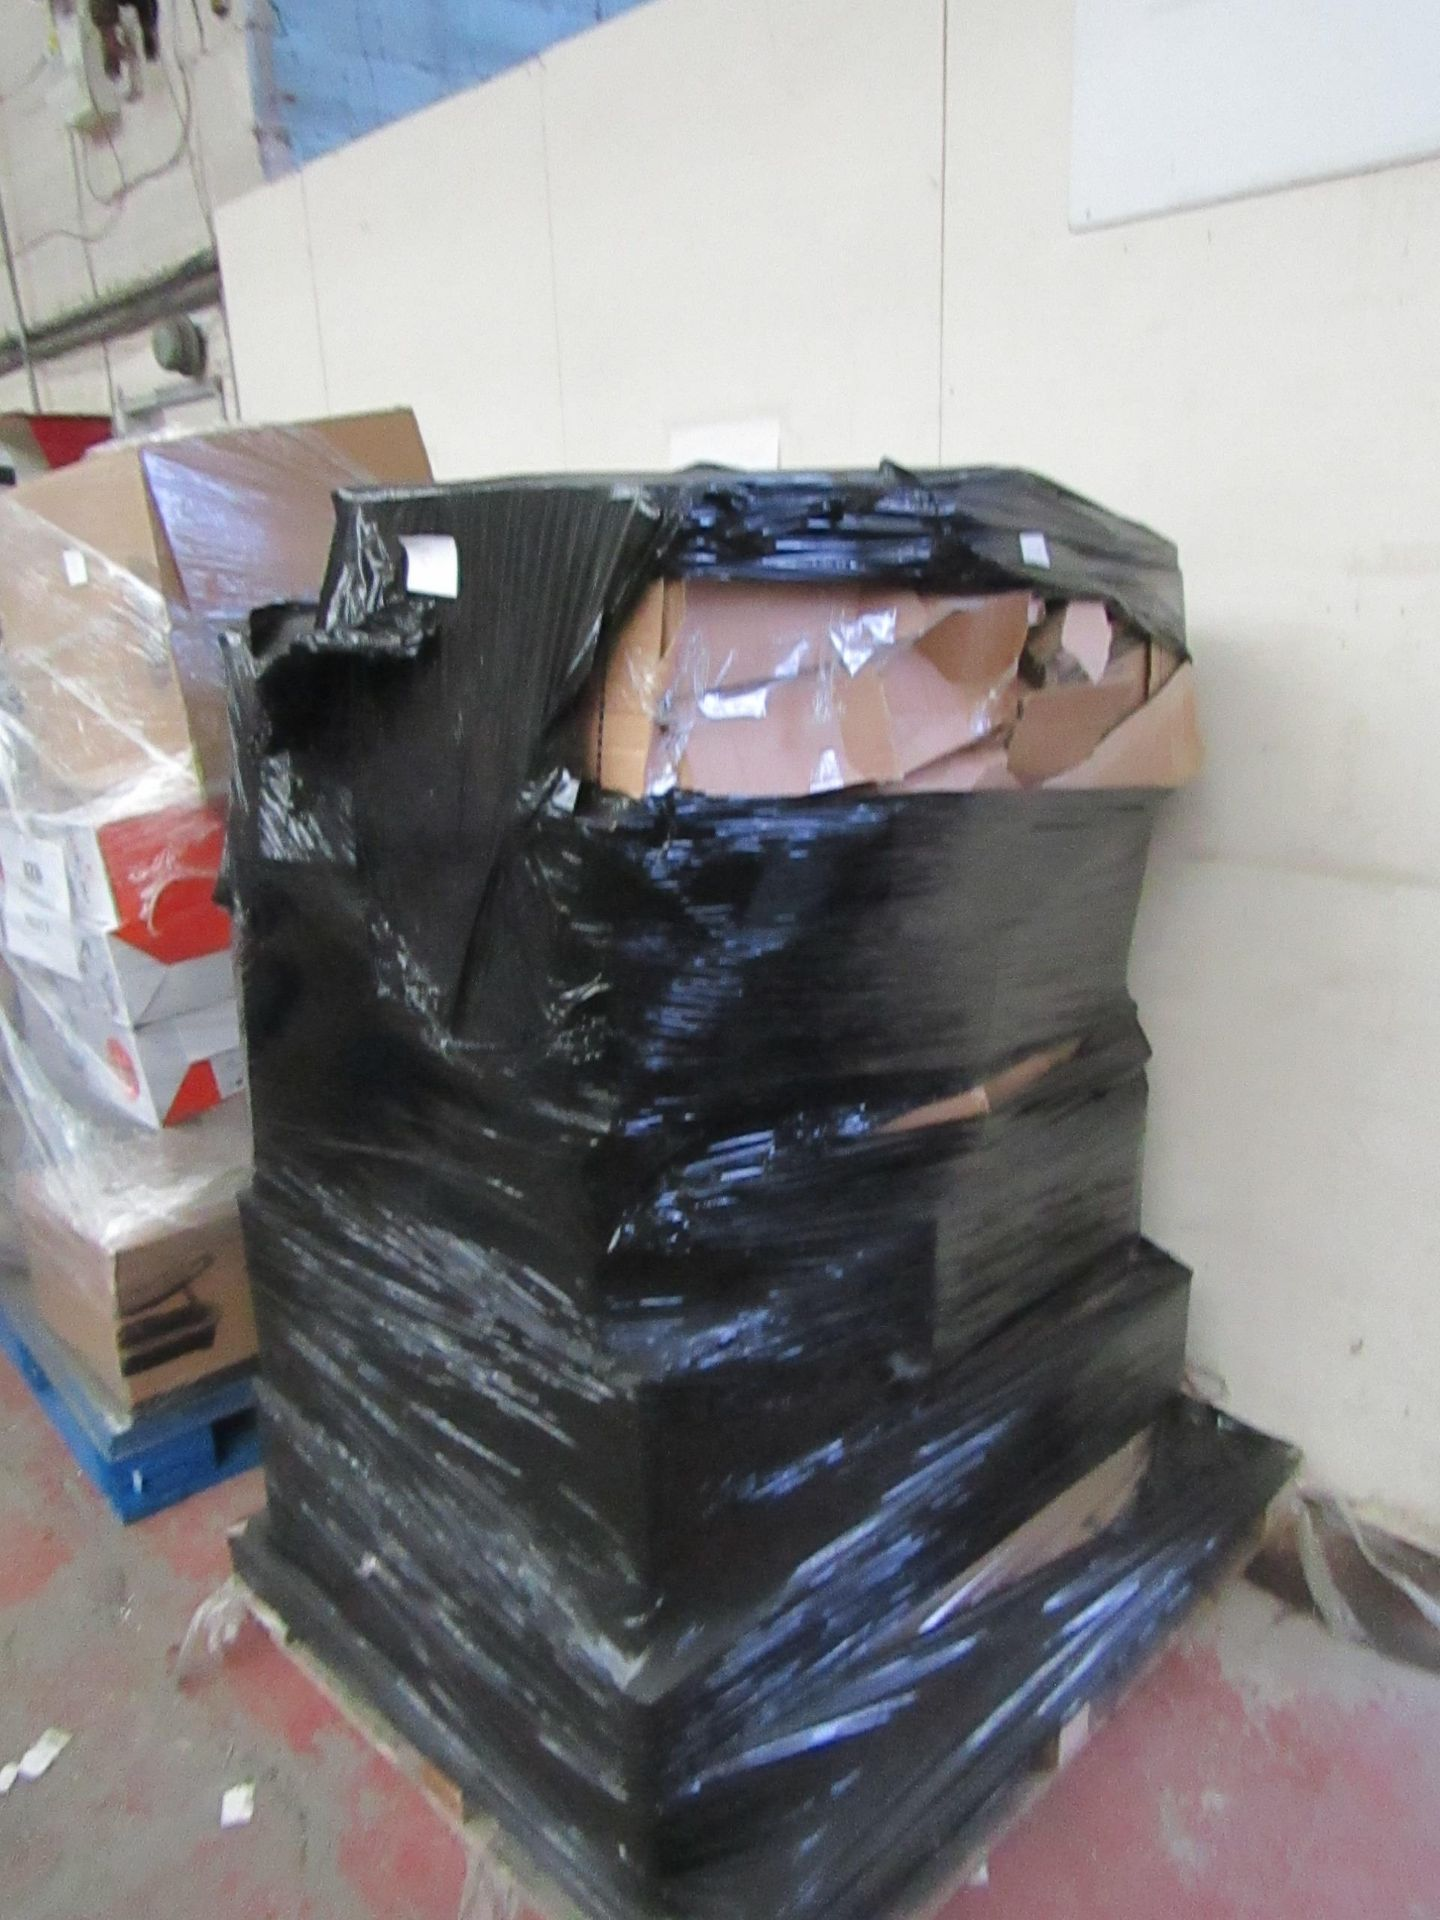   1X   PALLET OF UNMANIFESTED HOME FITNESS EQUIPMENT, ALL RAW CUSTOMER RETURNS SOME MAY BE LOOSE